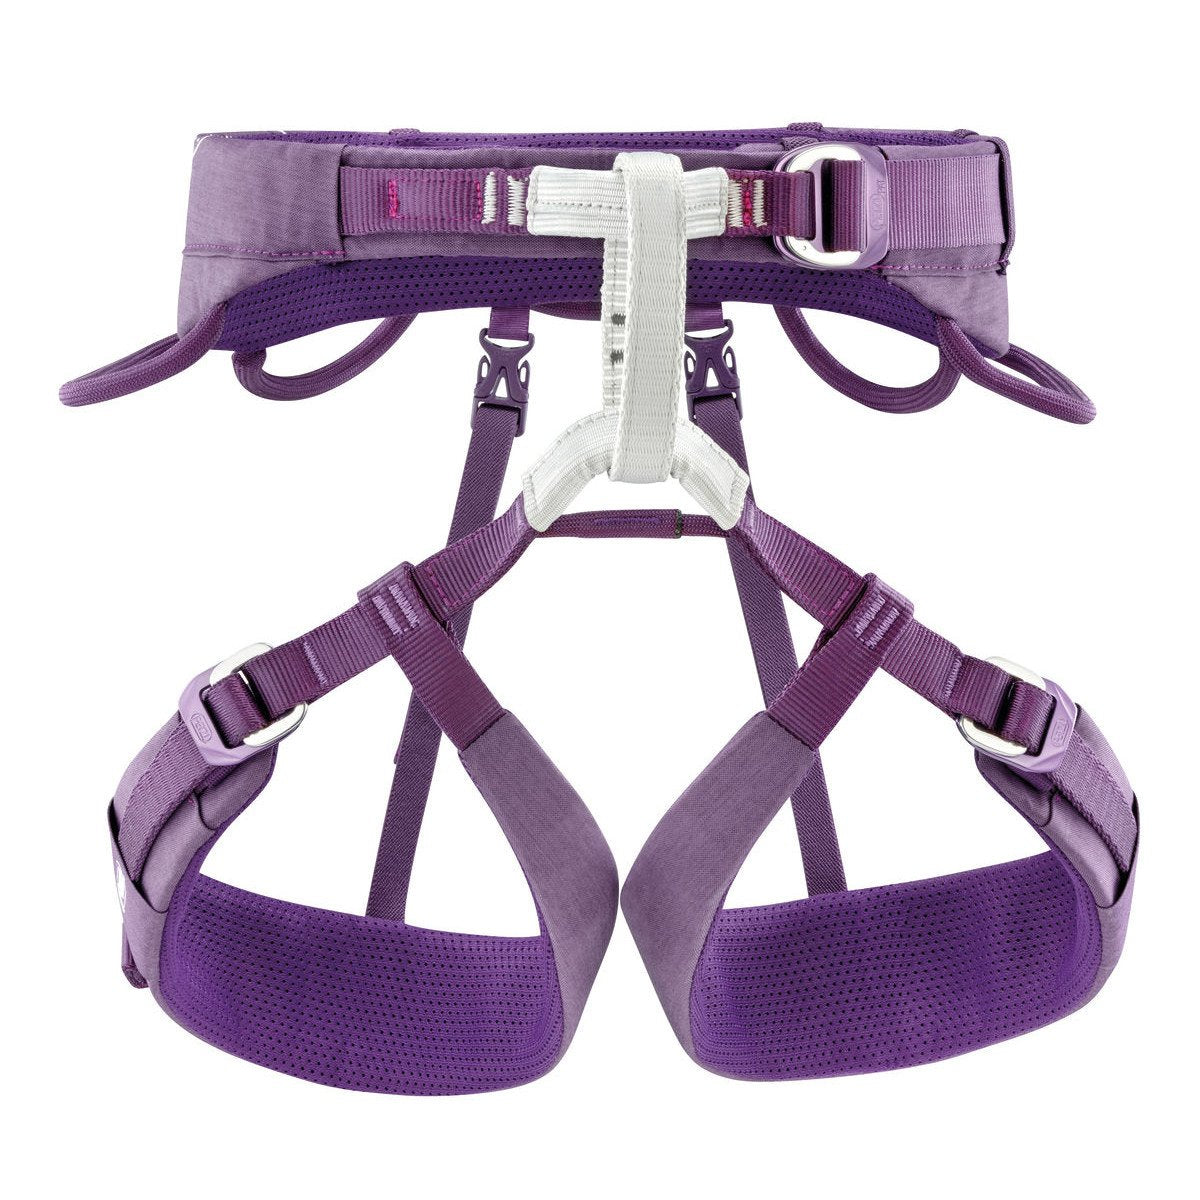 Petzl Luna womens climbing Harness, front view, in purple colour